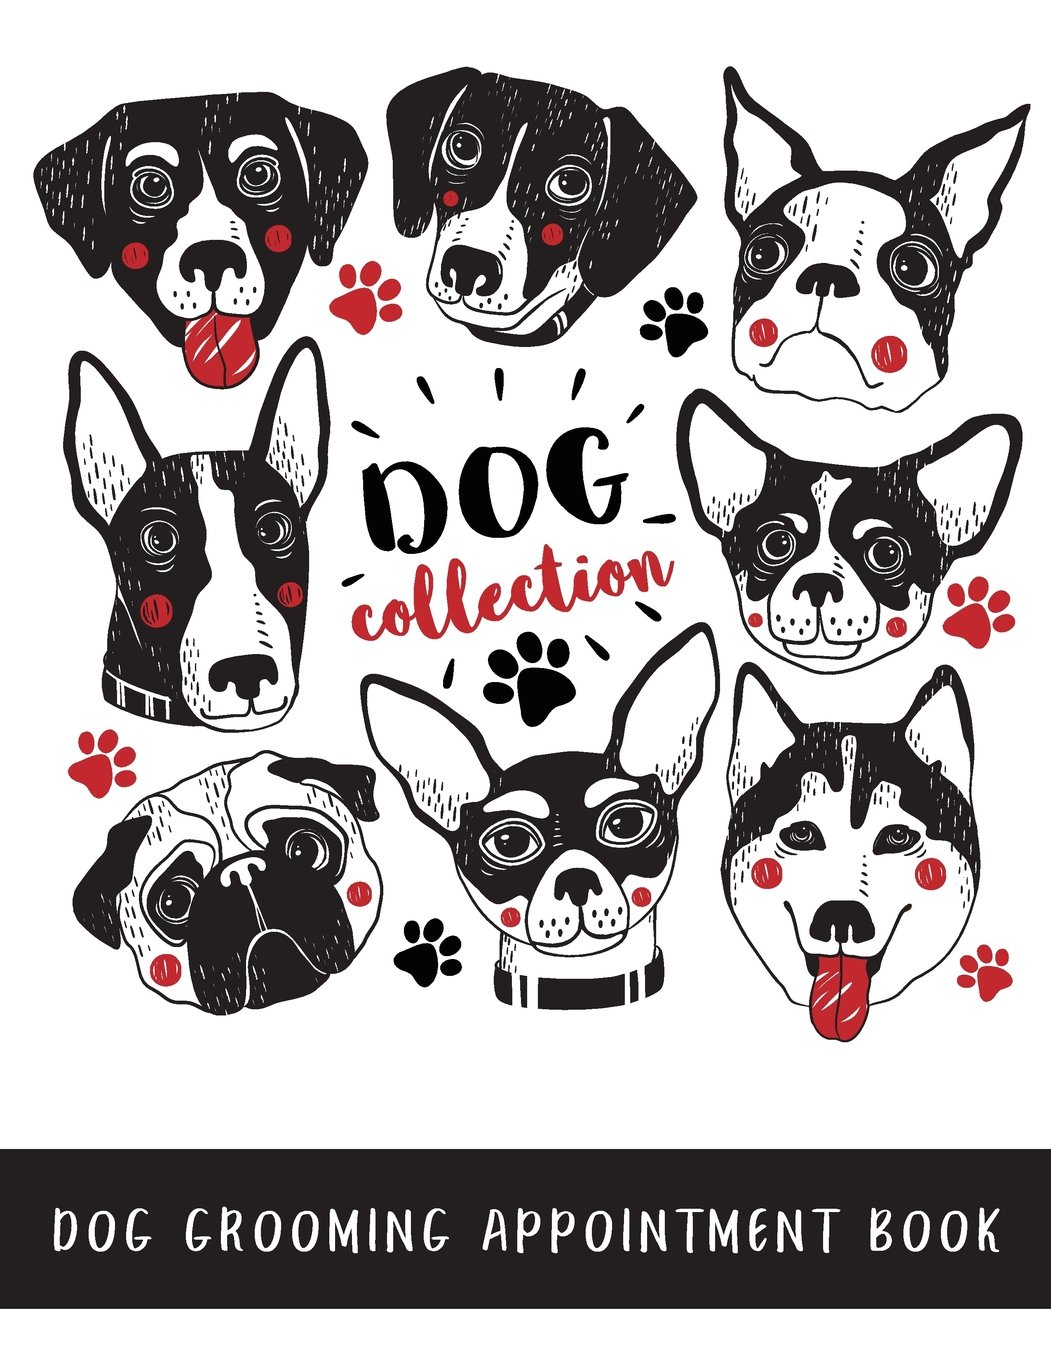 15 Minute Slots Schedule Appointment Book For Salons Daily Appointment Organizer Dogs Spas etc Includes notes section at the back Dog Grooming Appointment Book: Weekly Calendar Dog Hairdressers